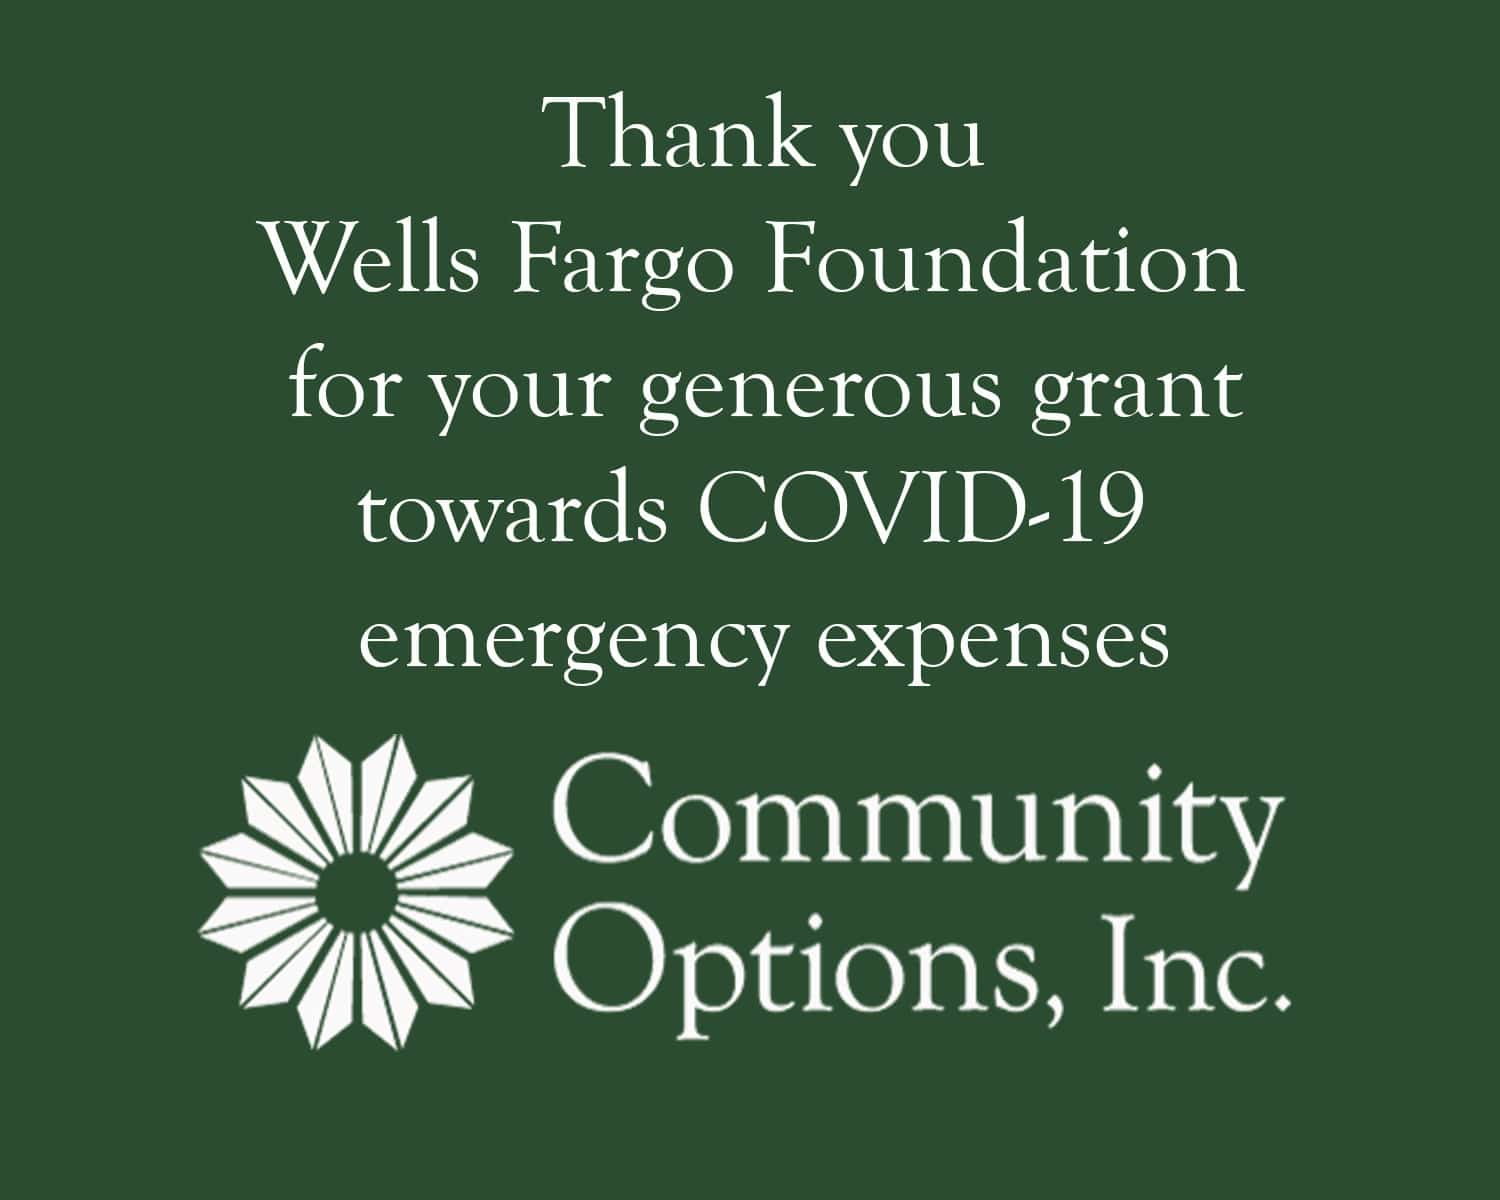 Thank you Wells Fargo Foundation for your generous grant towards COVID-19 emergency expenses